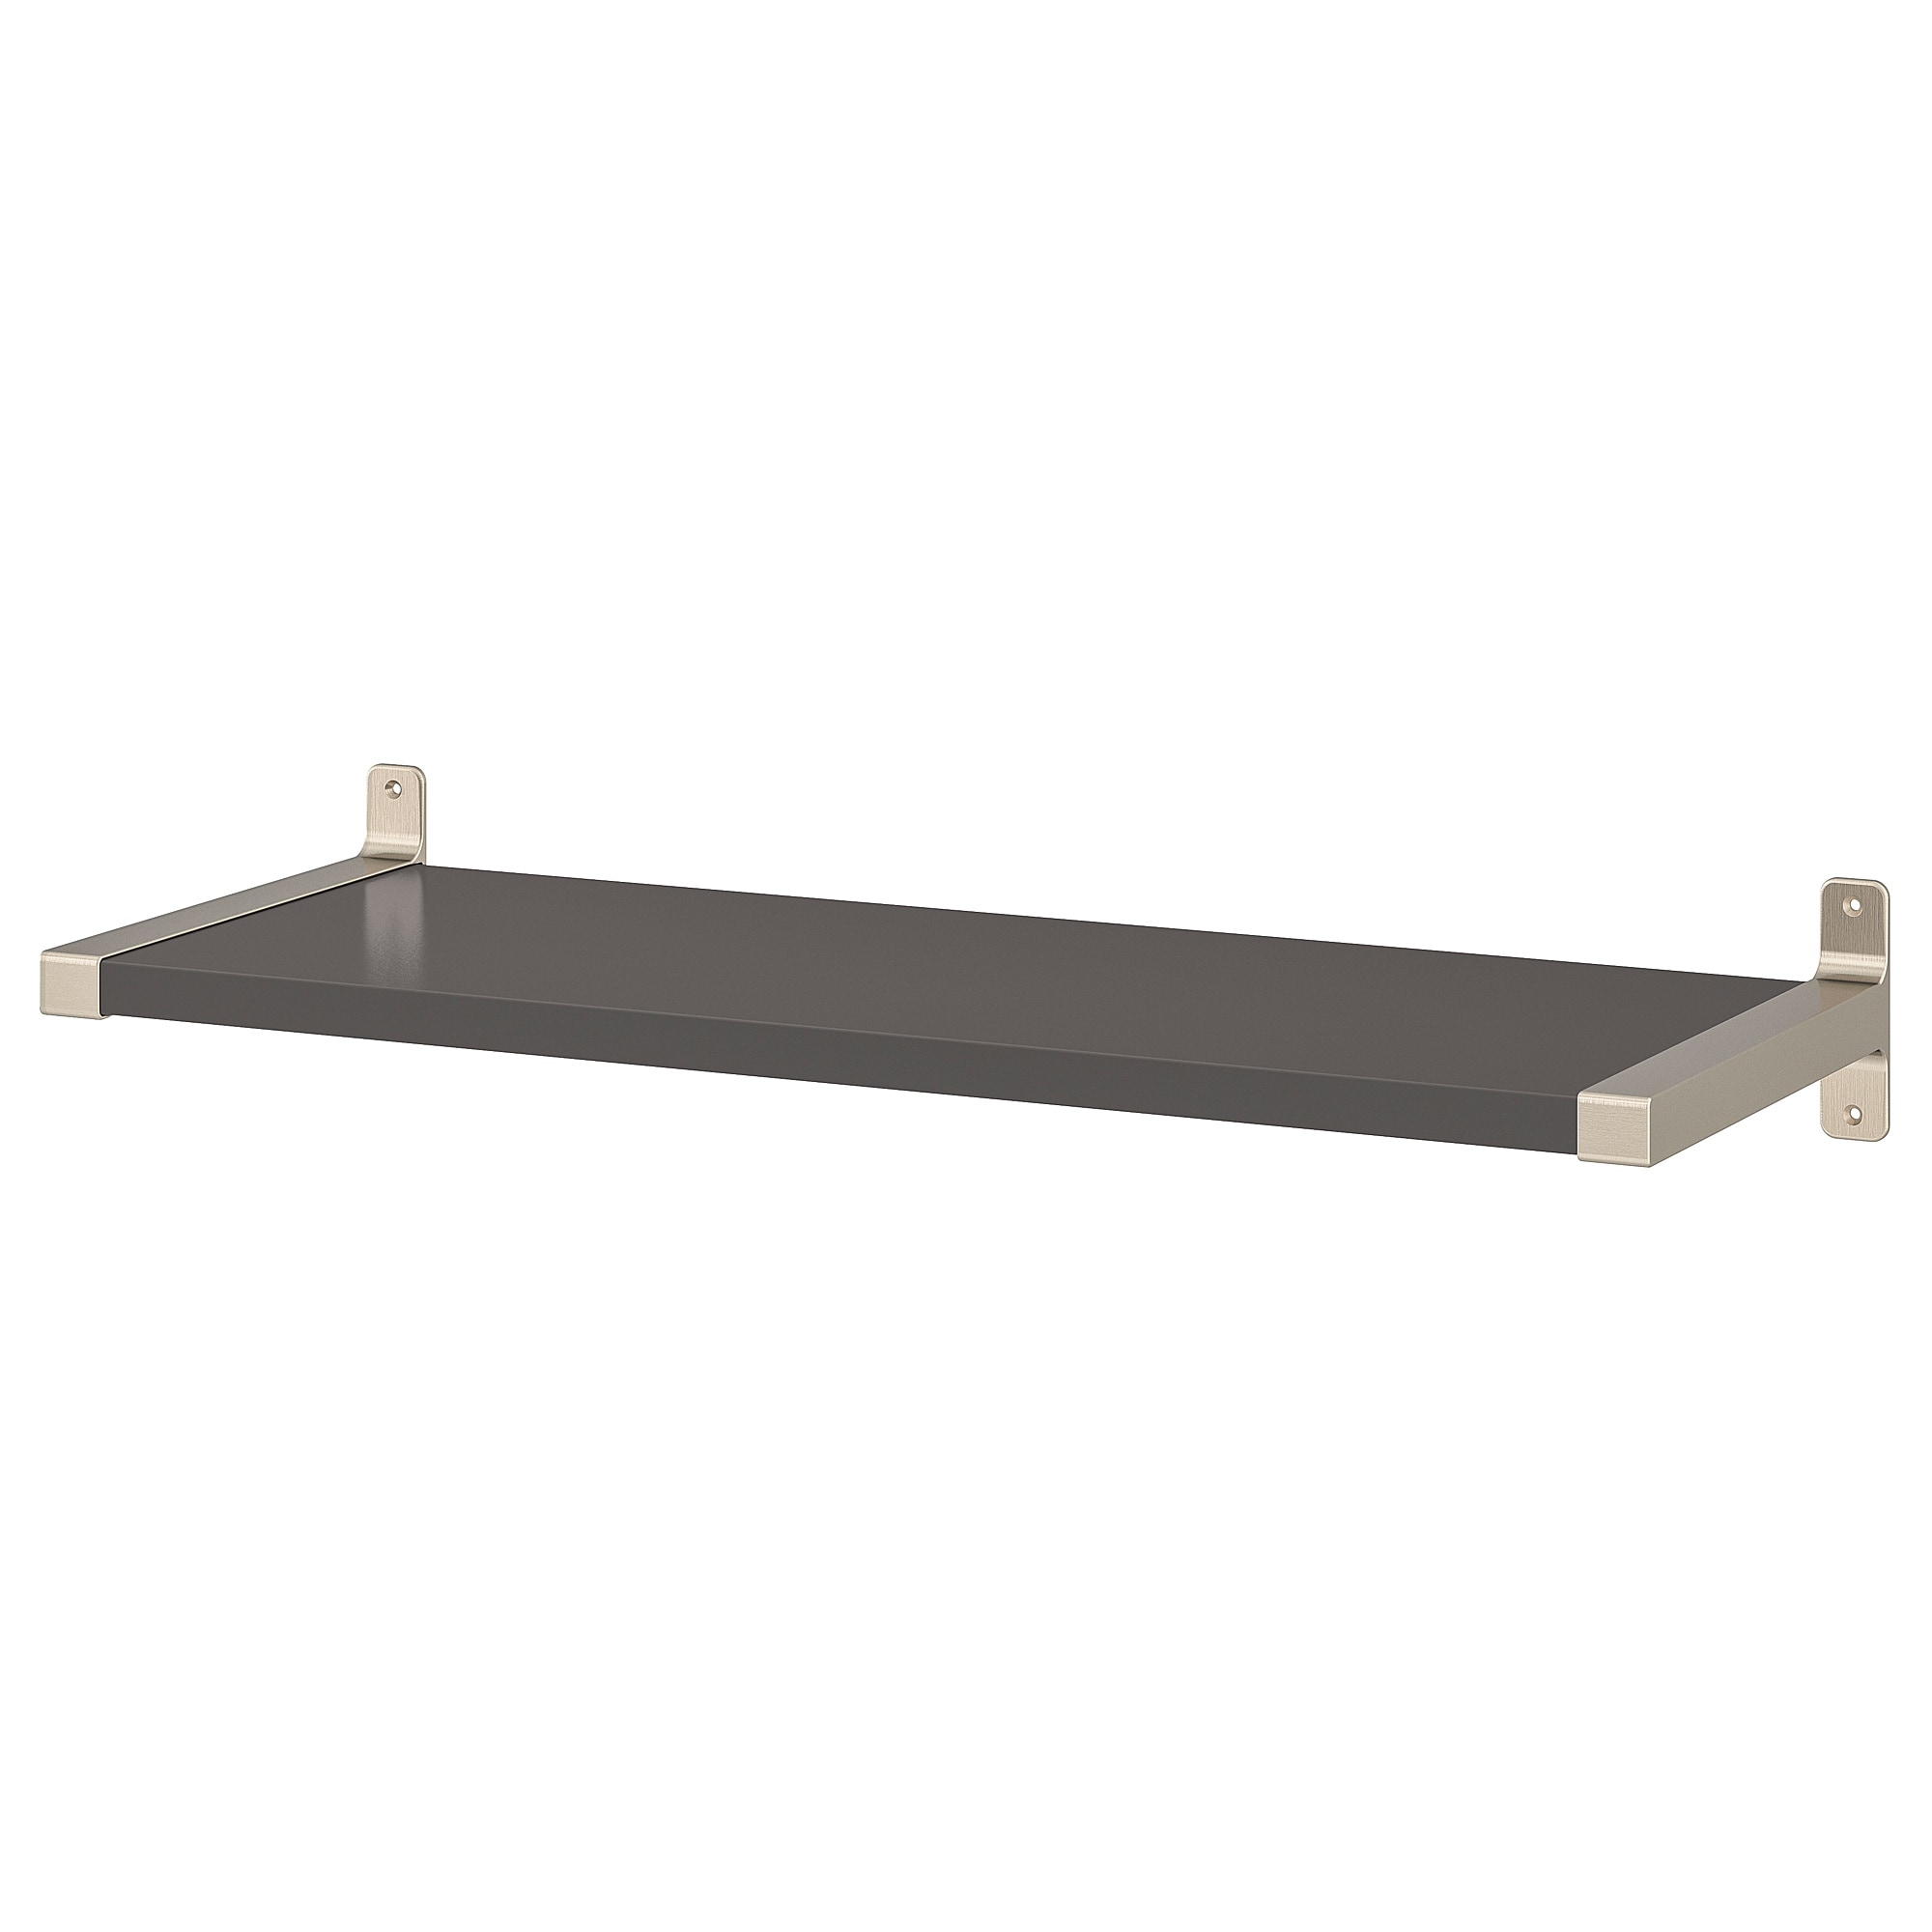 floating shelves wall shelf brackets ikea granhult bergshult dark grey nickel plated cube pottery barn holman installation tures built shelving kits decorative corner white box